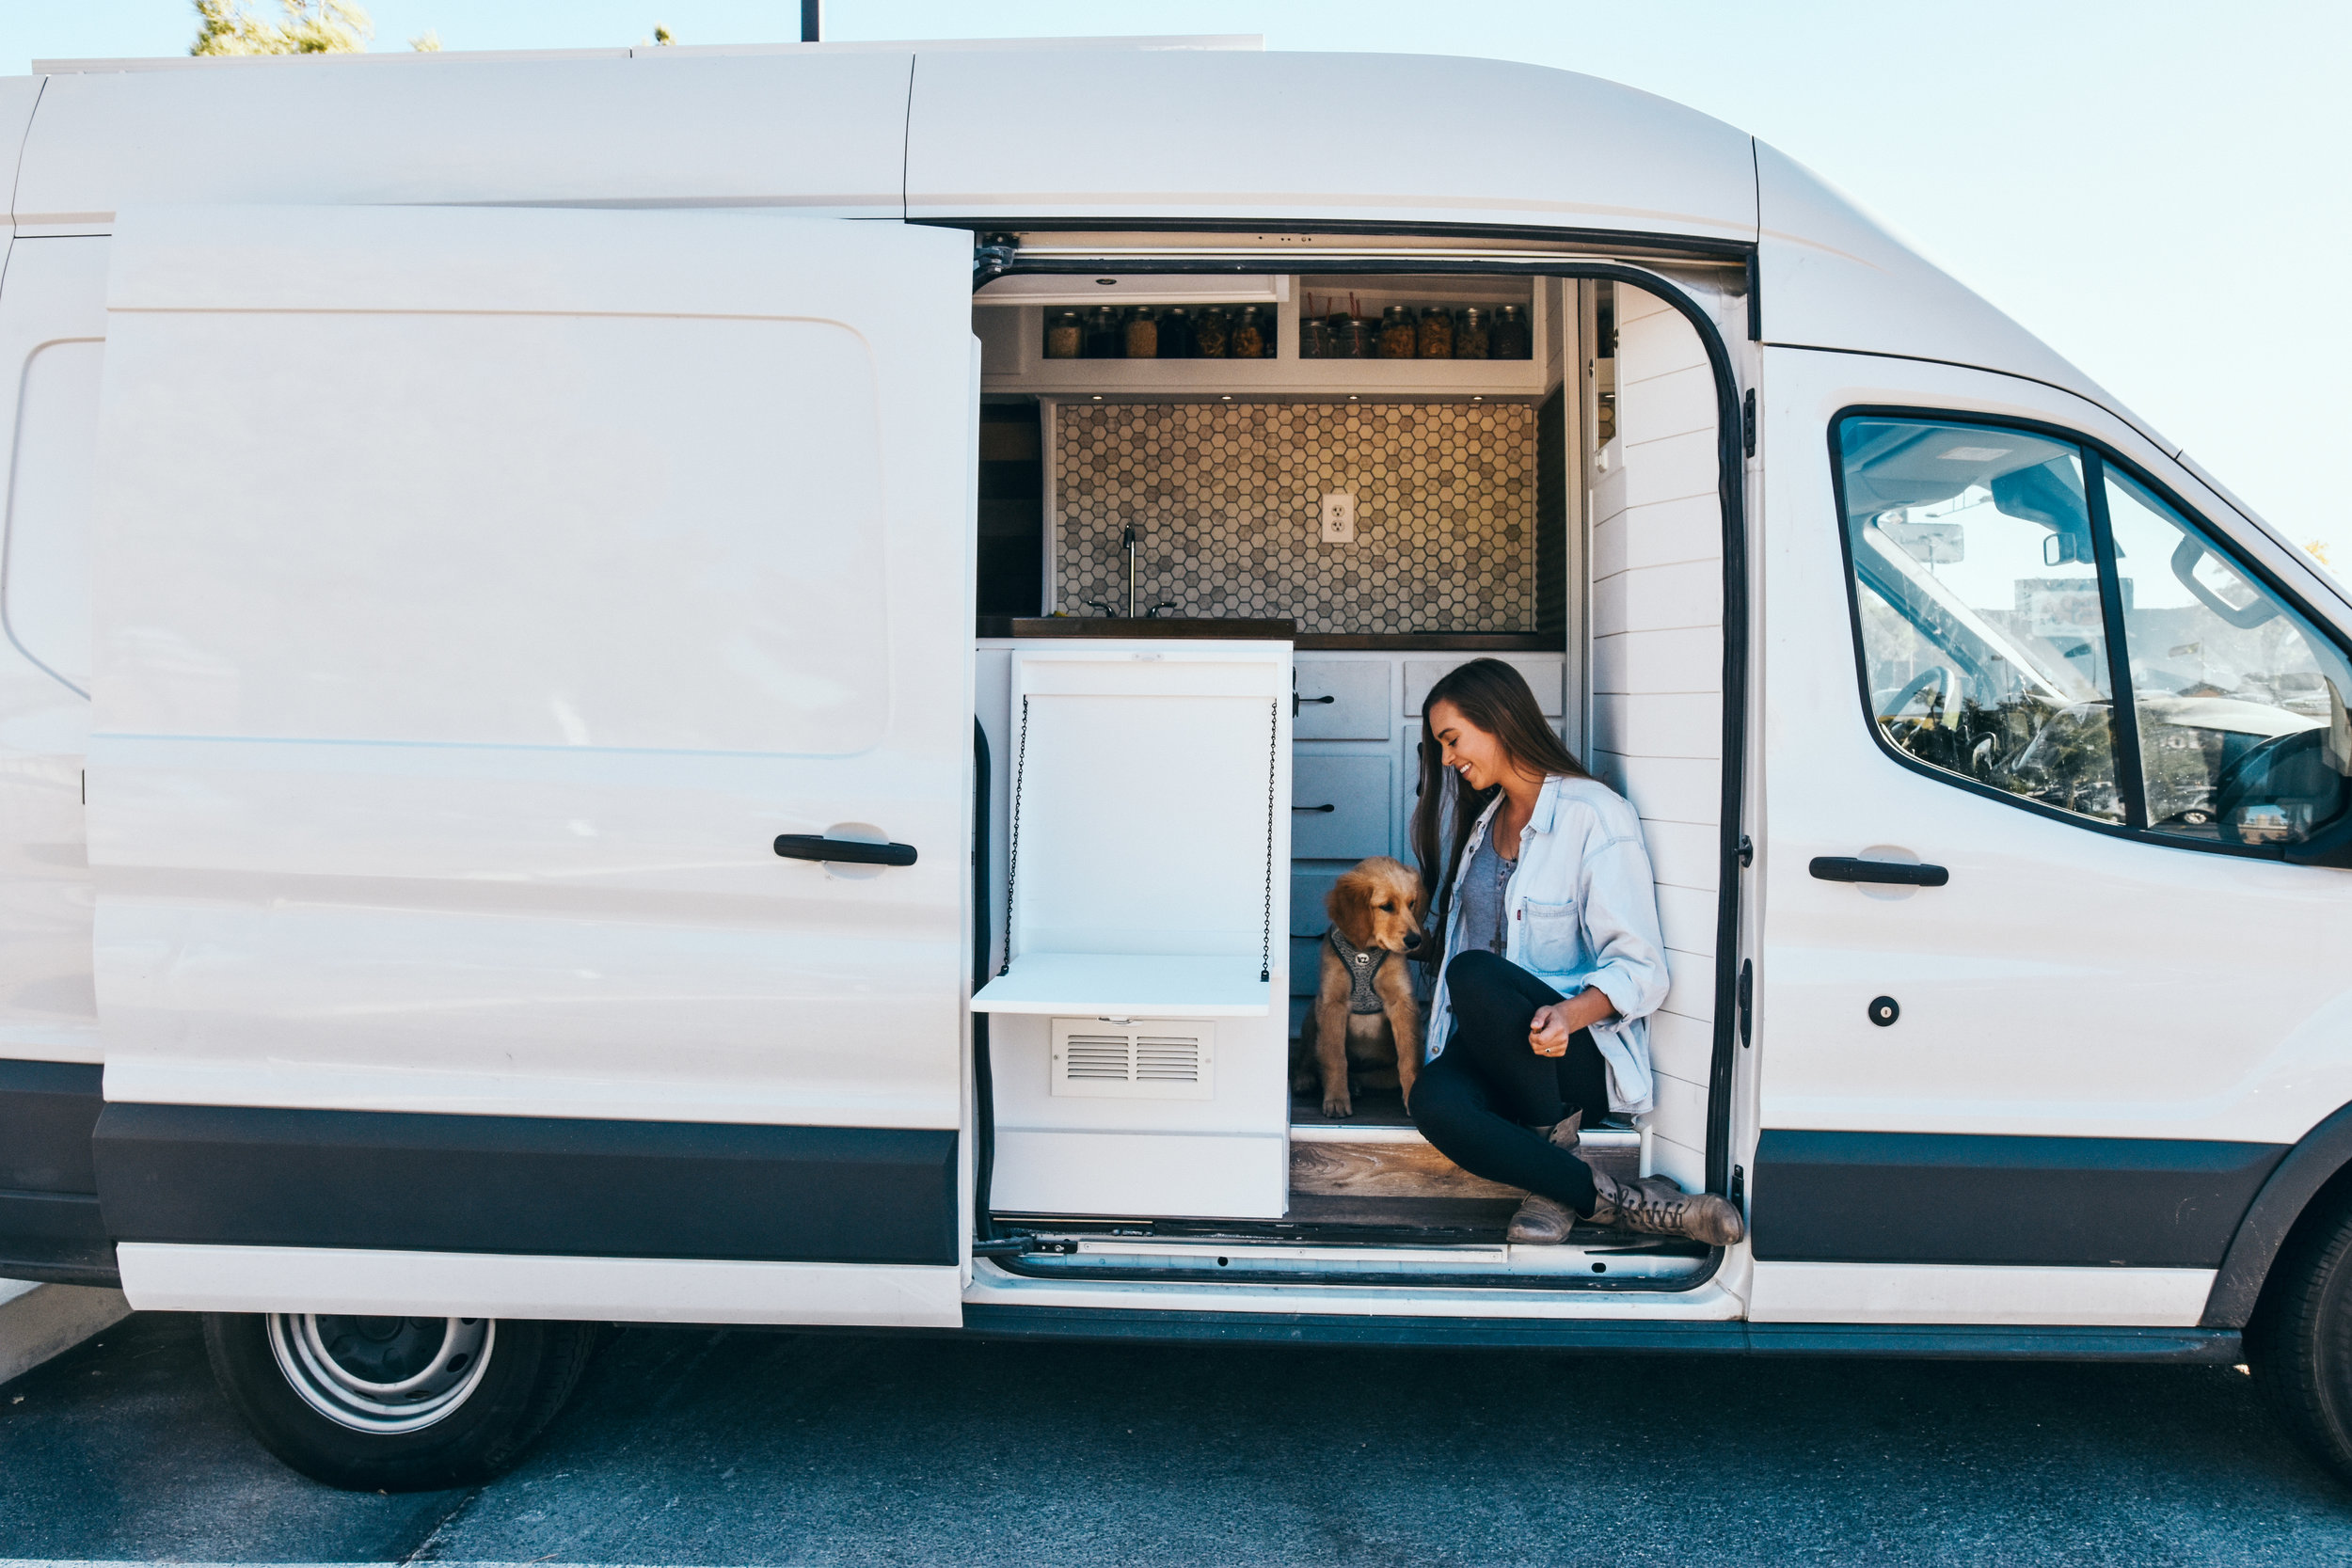 Divine On The Road - Sydney is a solo female traveler living van life and touring the USA in a white Ford Transit conversion with her pup Ella